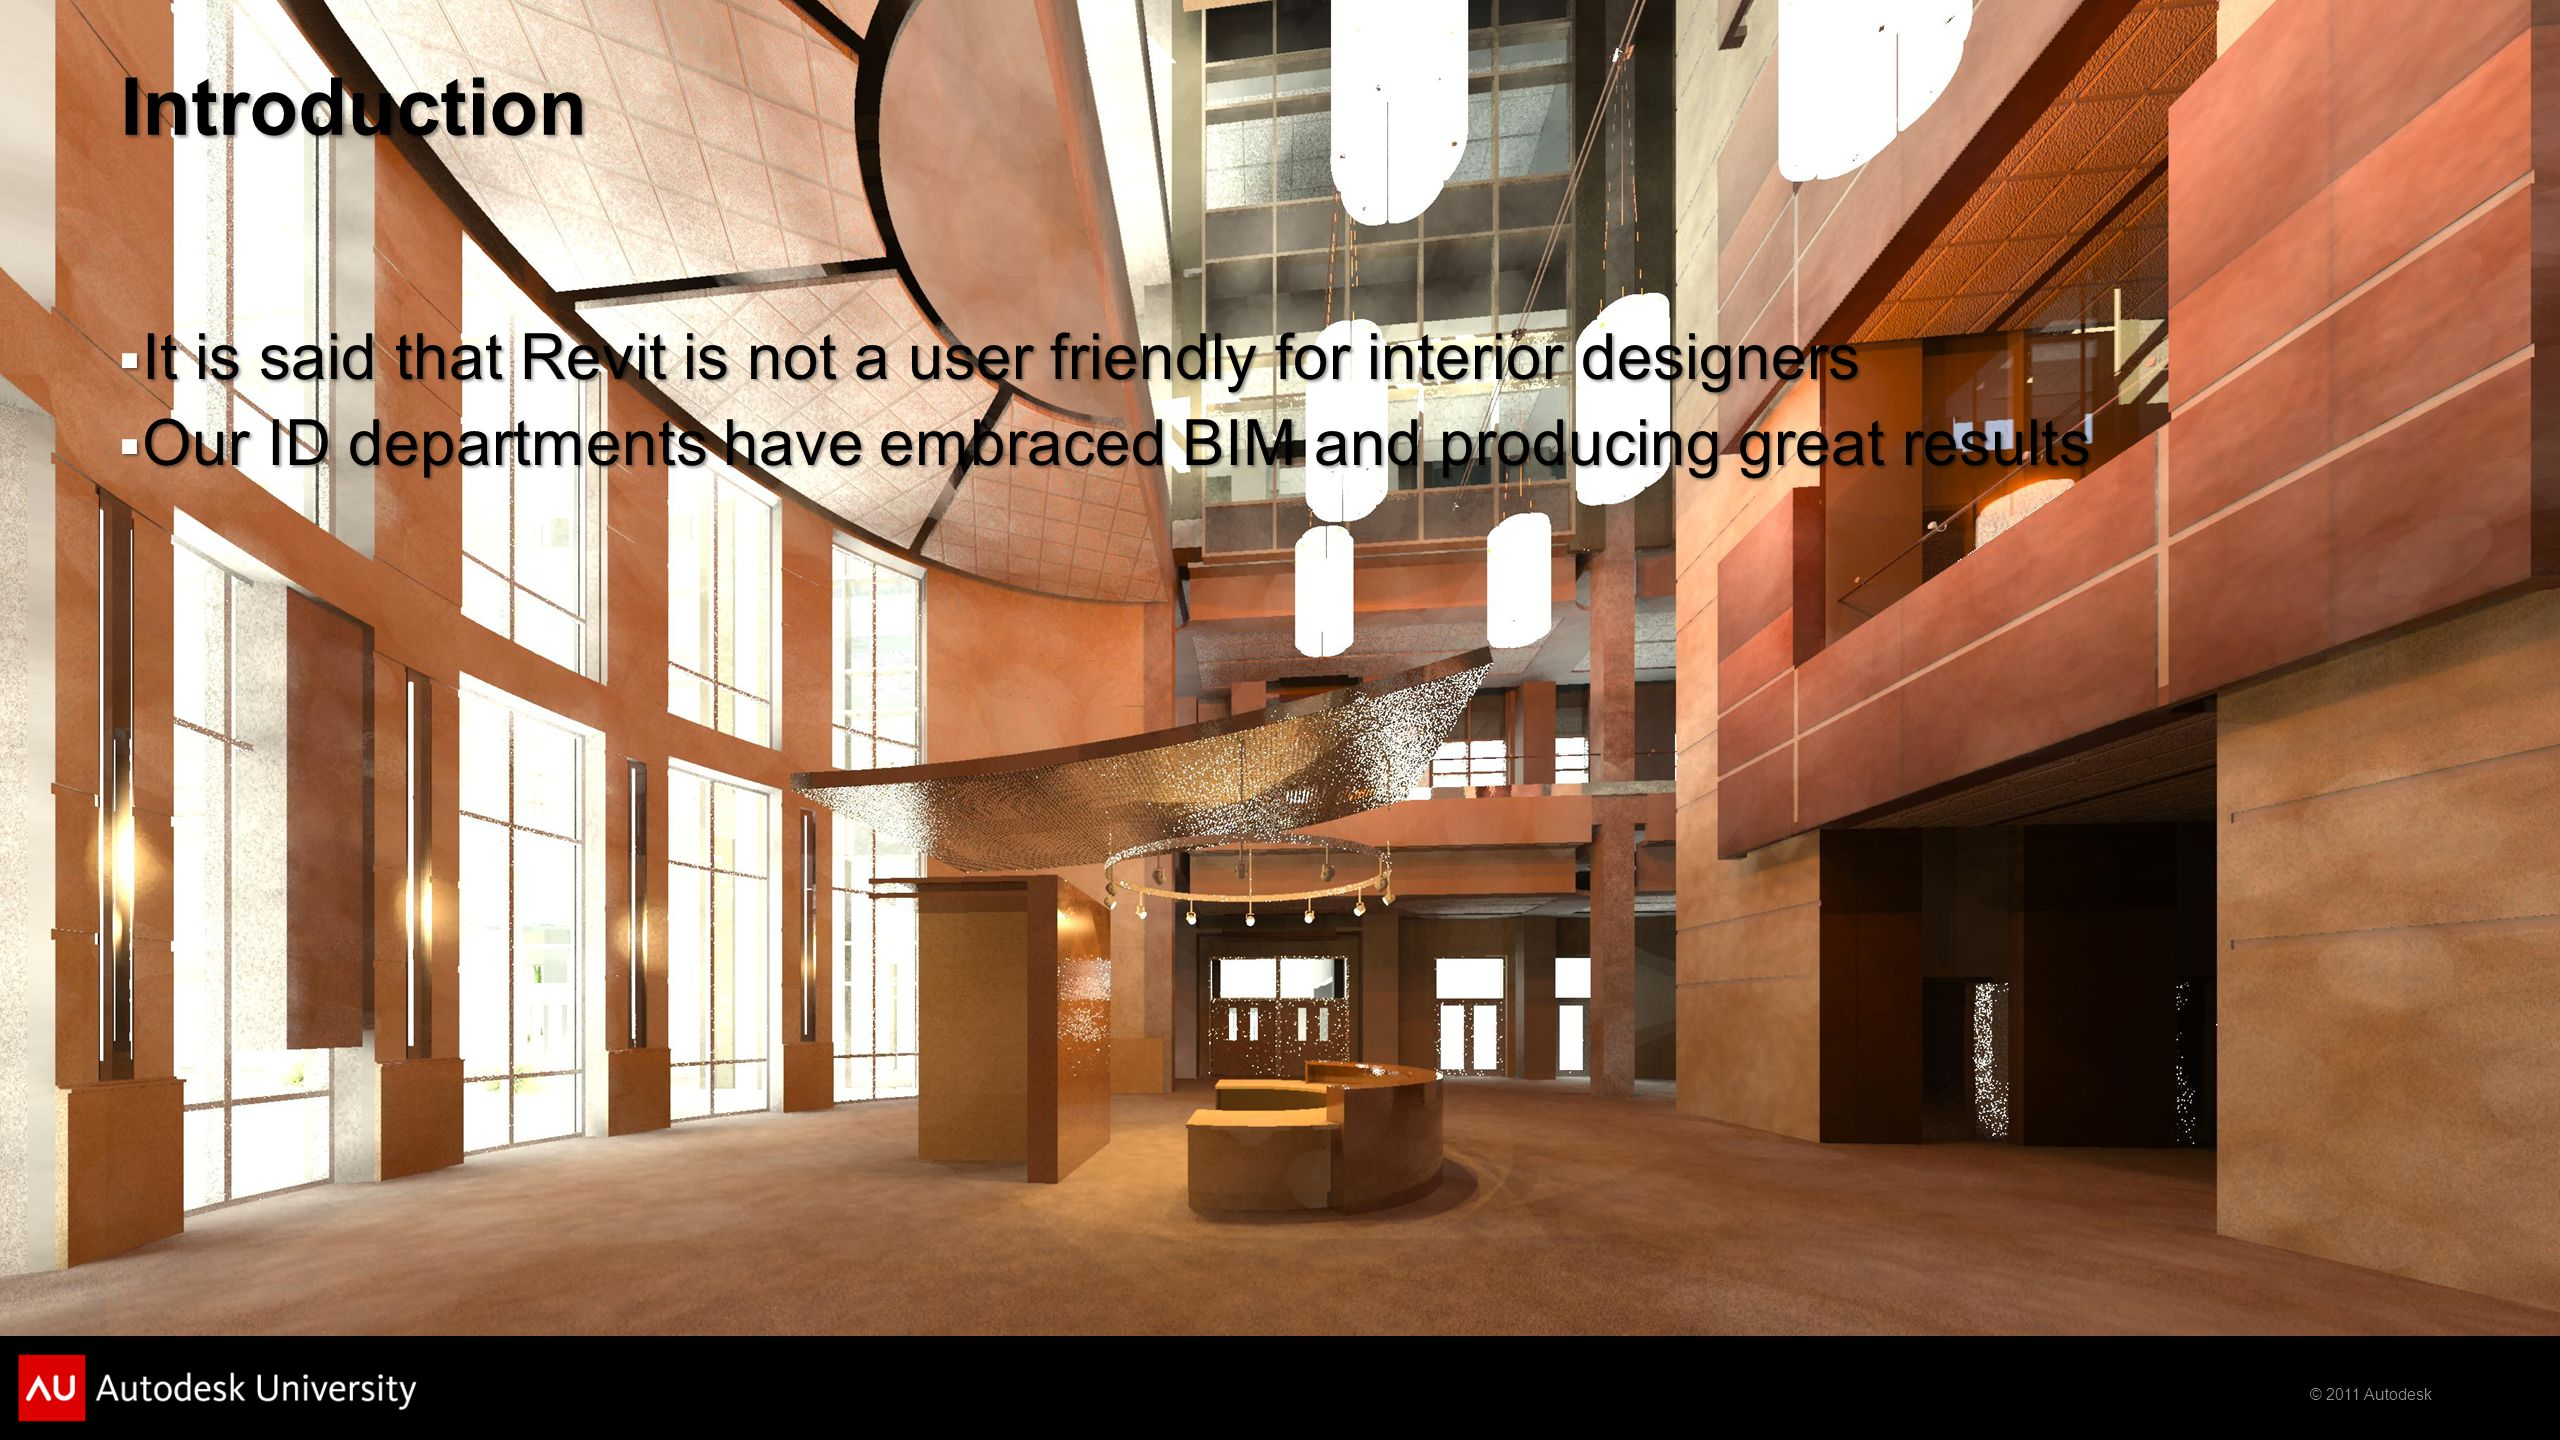 Introduction It is said that Revit is not a user friendly for interior designers.